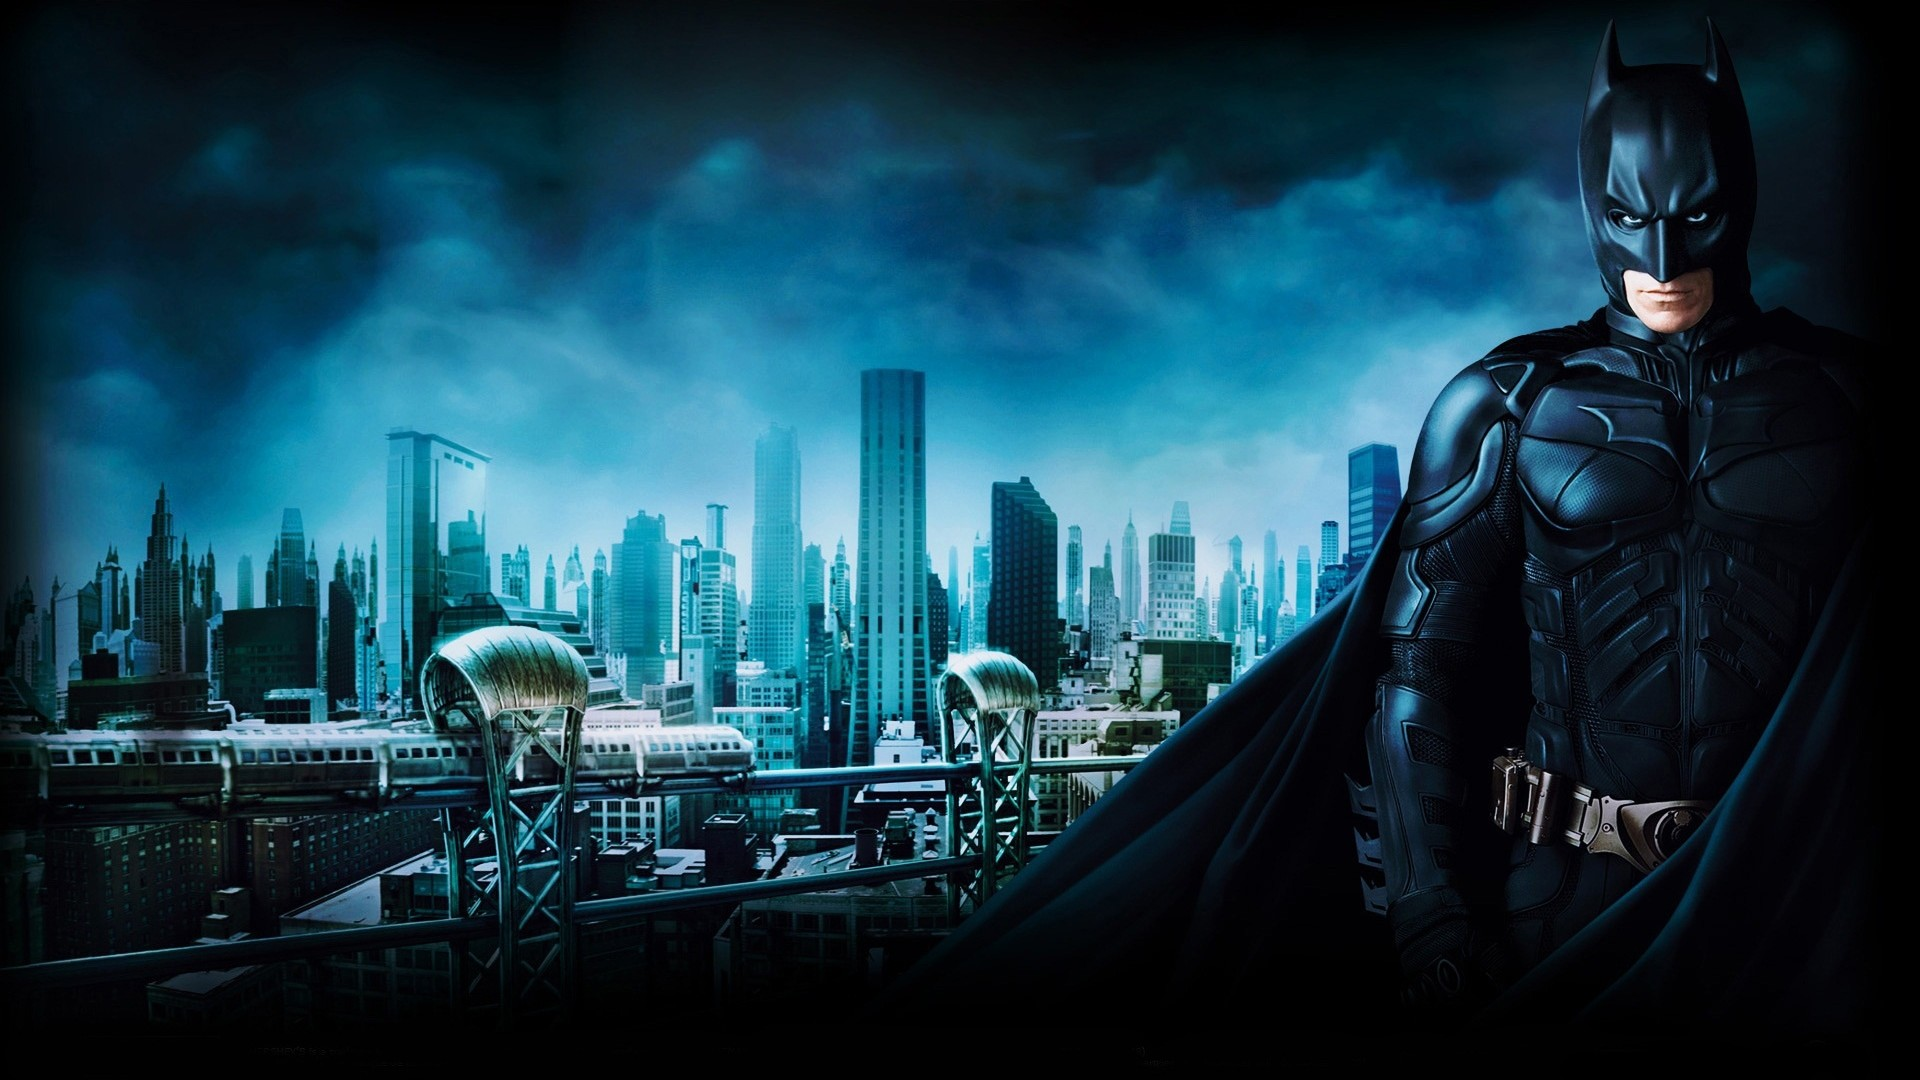 wallpaper gotham train begins batman wallpapers backgrounds 1920x1080